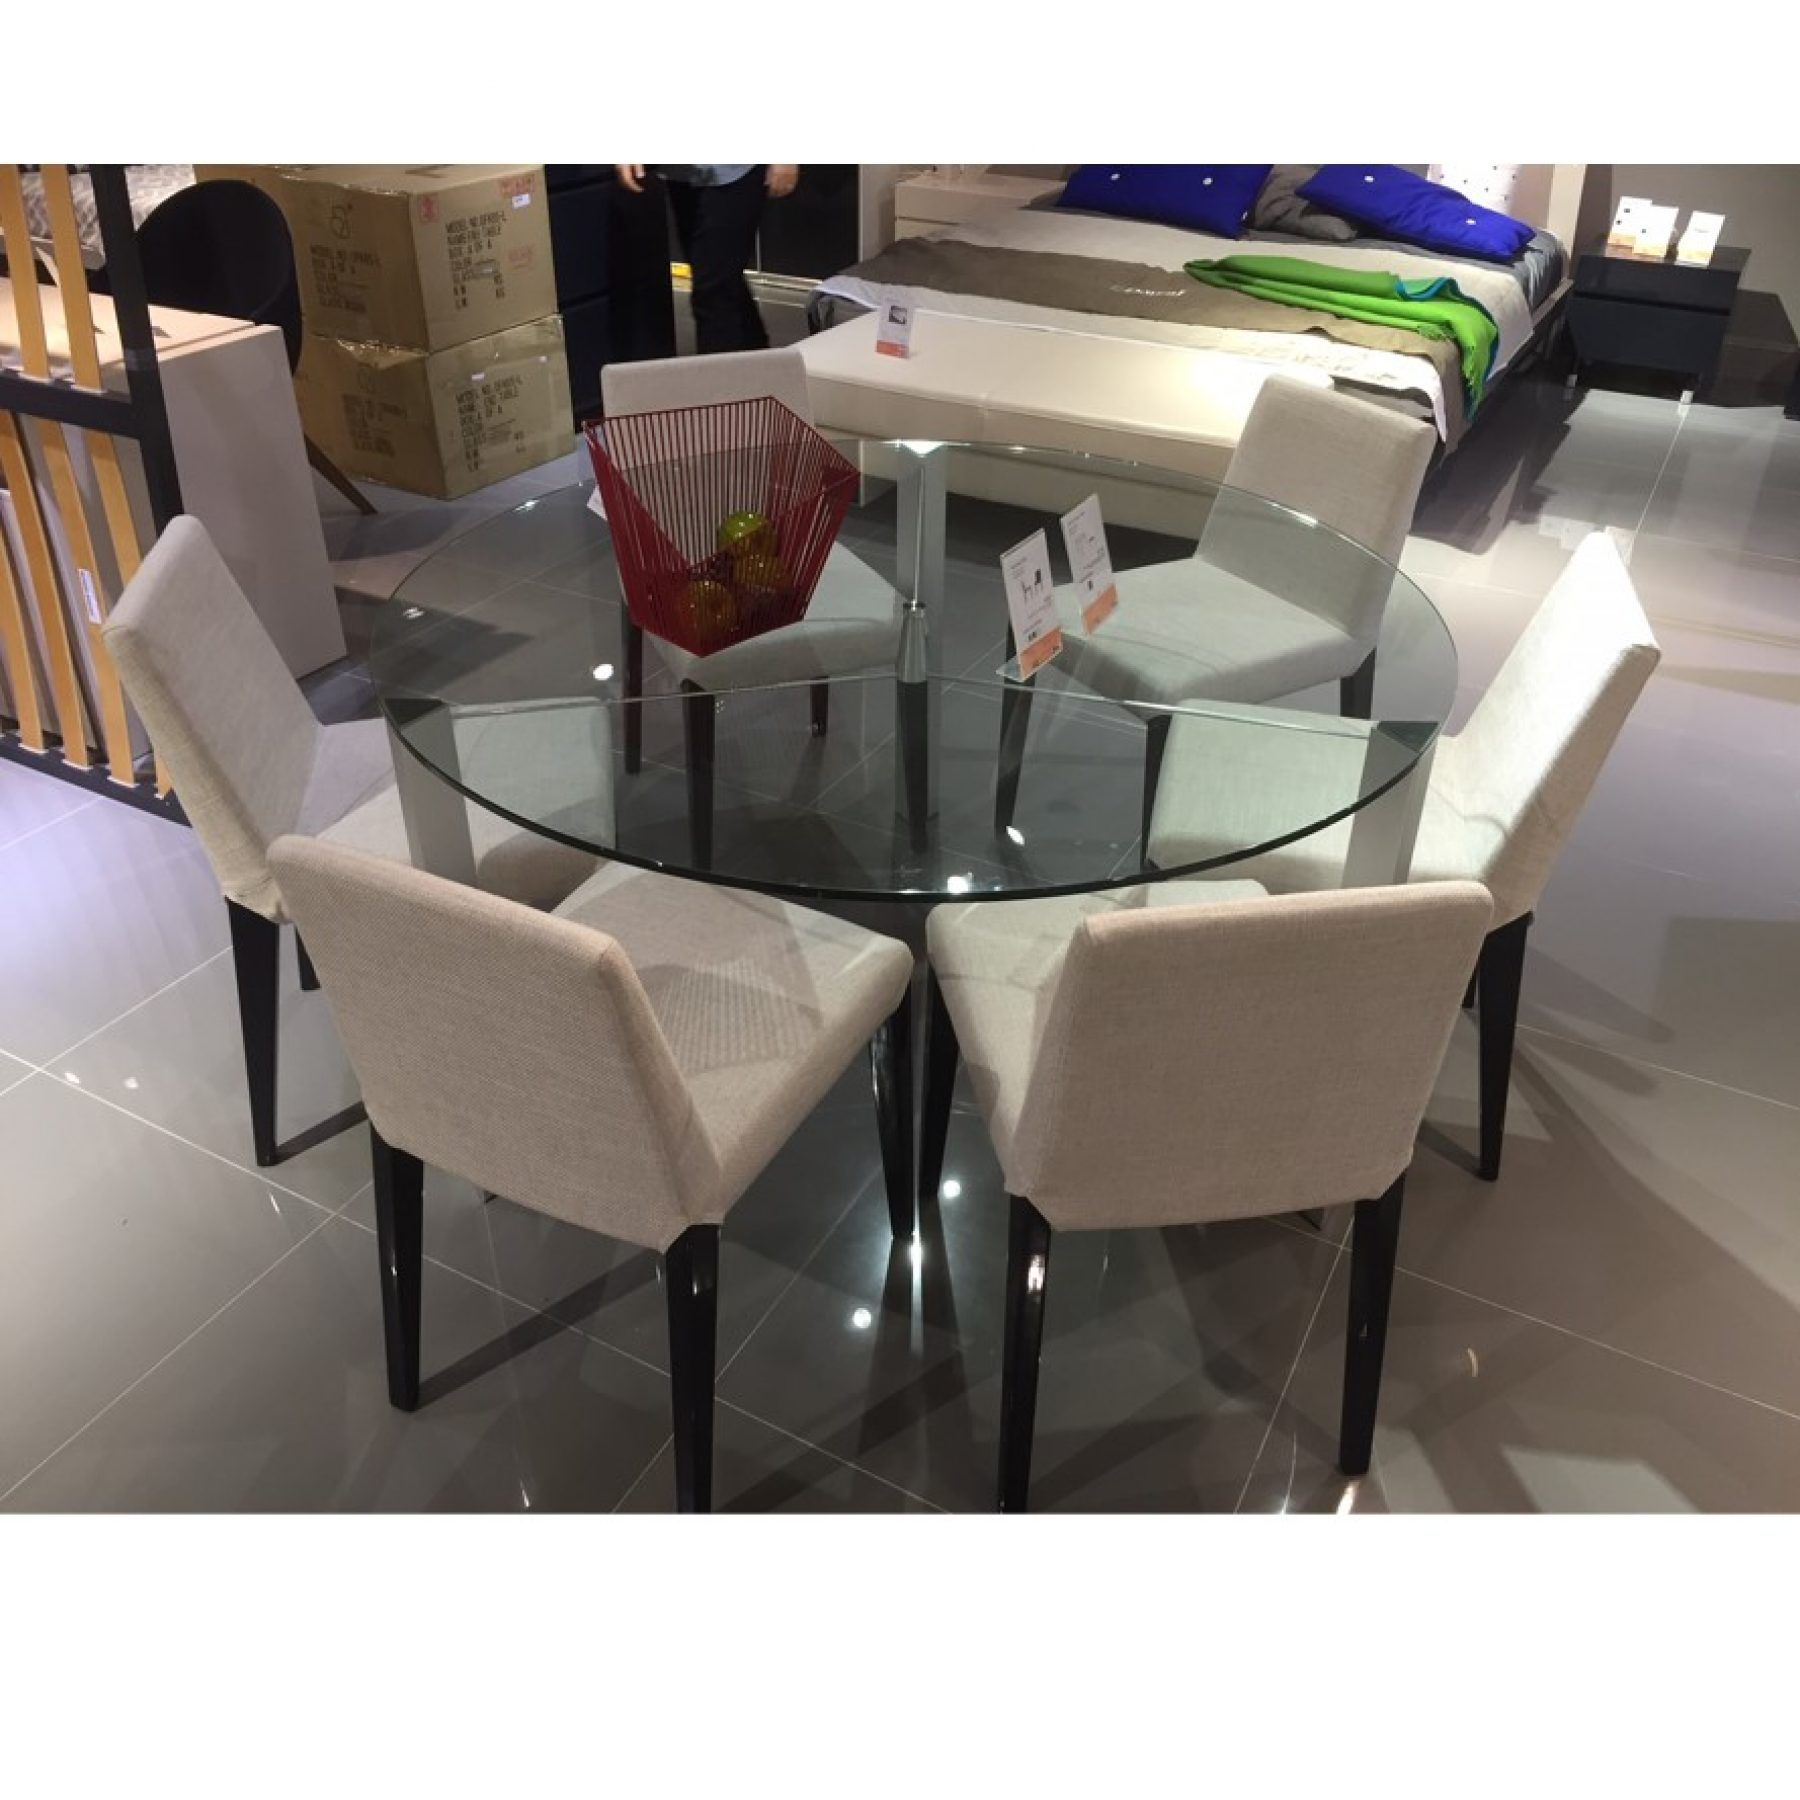 Warehouse Clearance- Occhio Dining Table